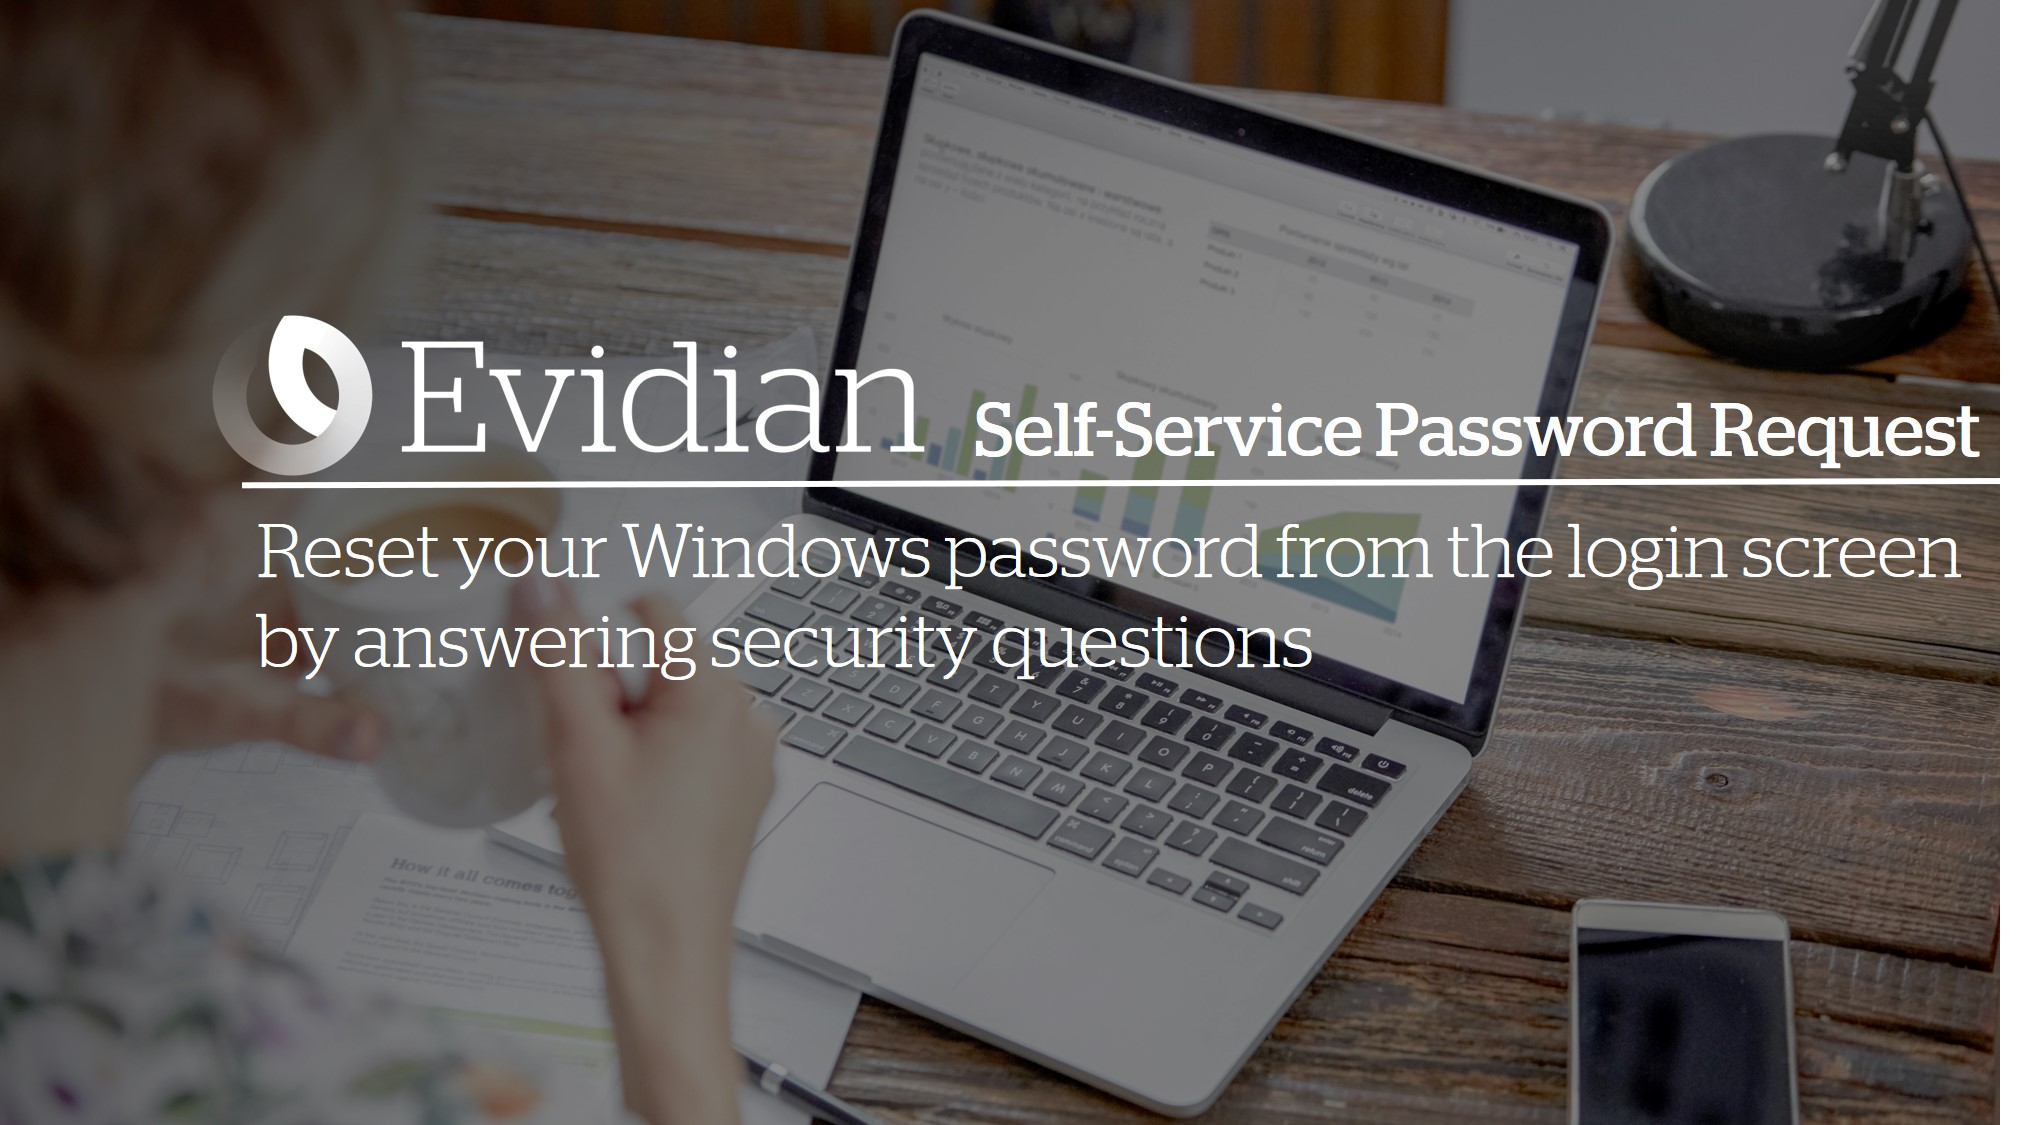 Reset your Windows password from the login screen by answering security questions